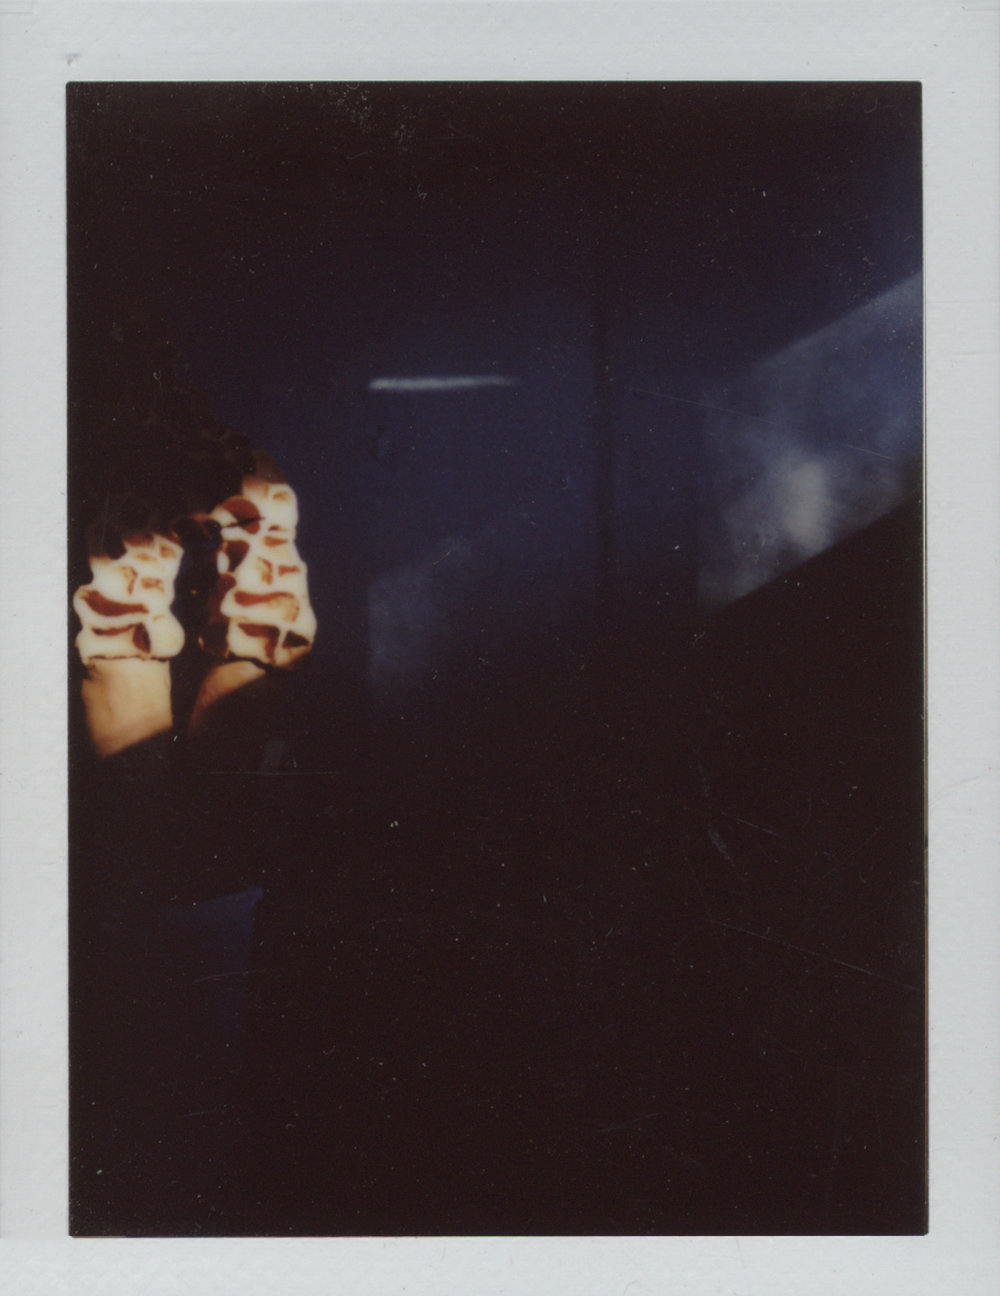 INSTAX studio light.jpg